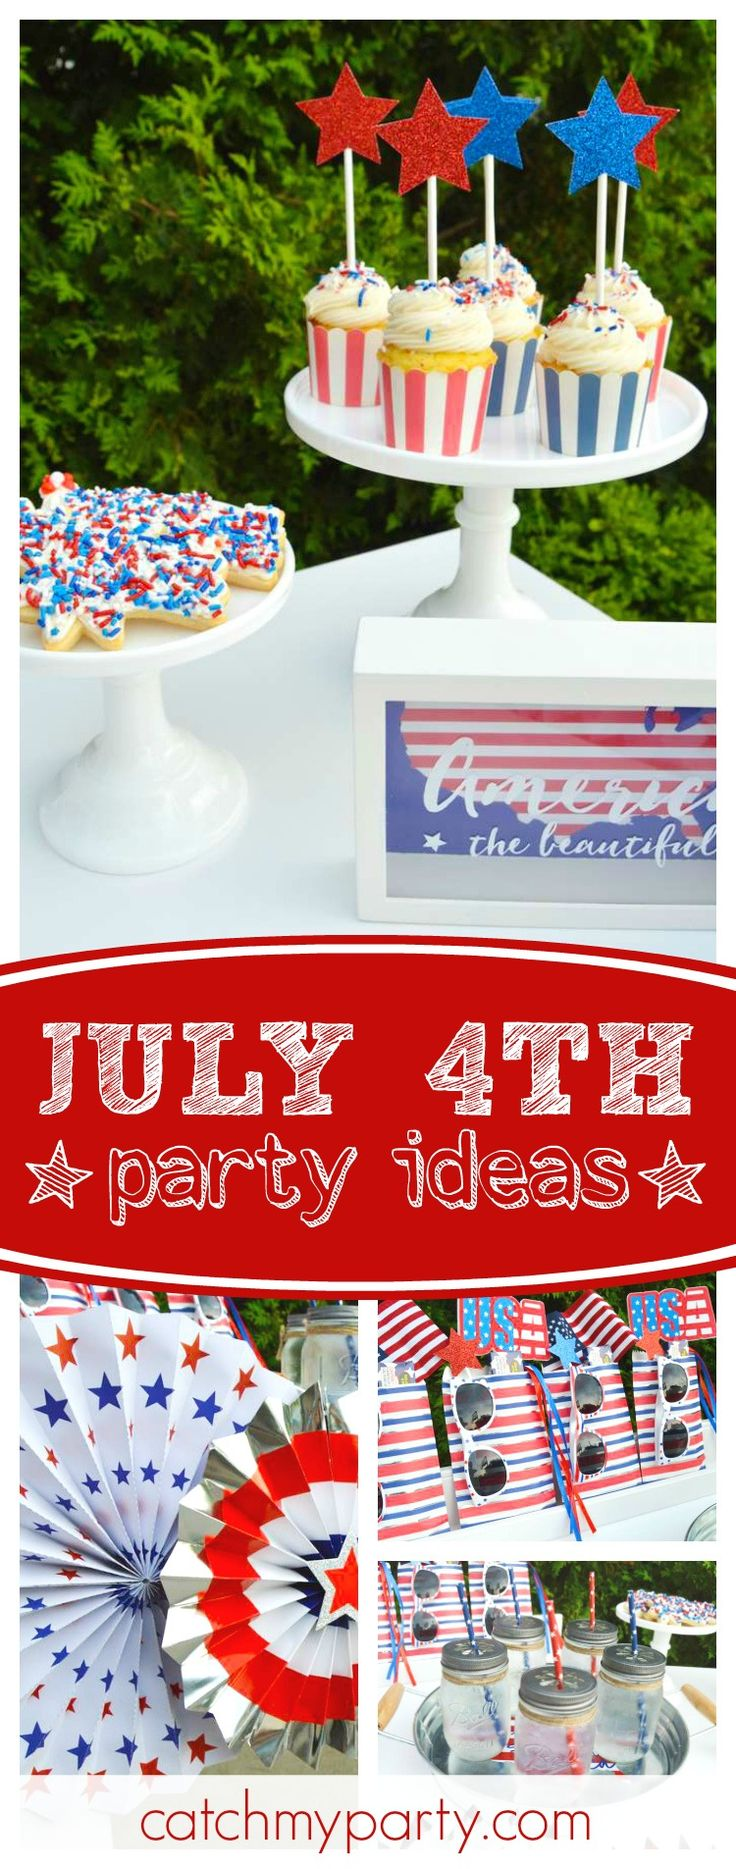 1124 best summer party planning ideas images on pinterest for 4th of july celebration ideas